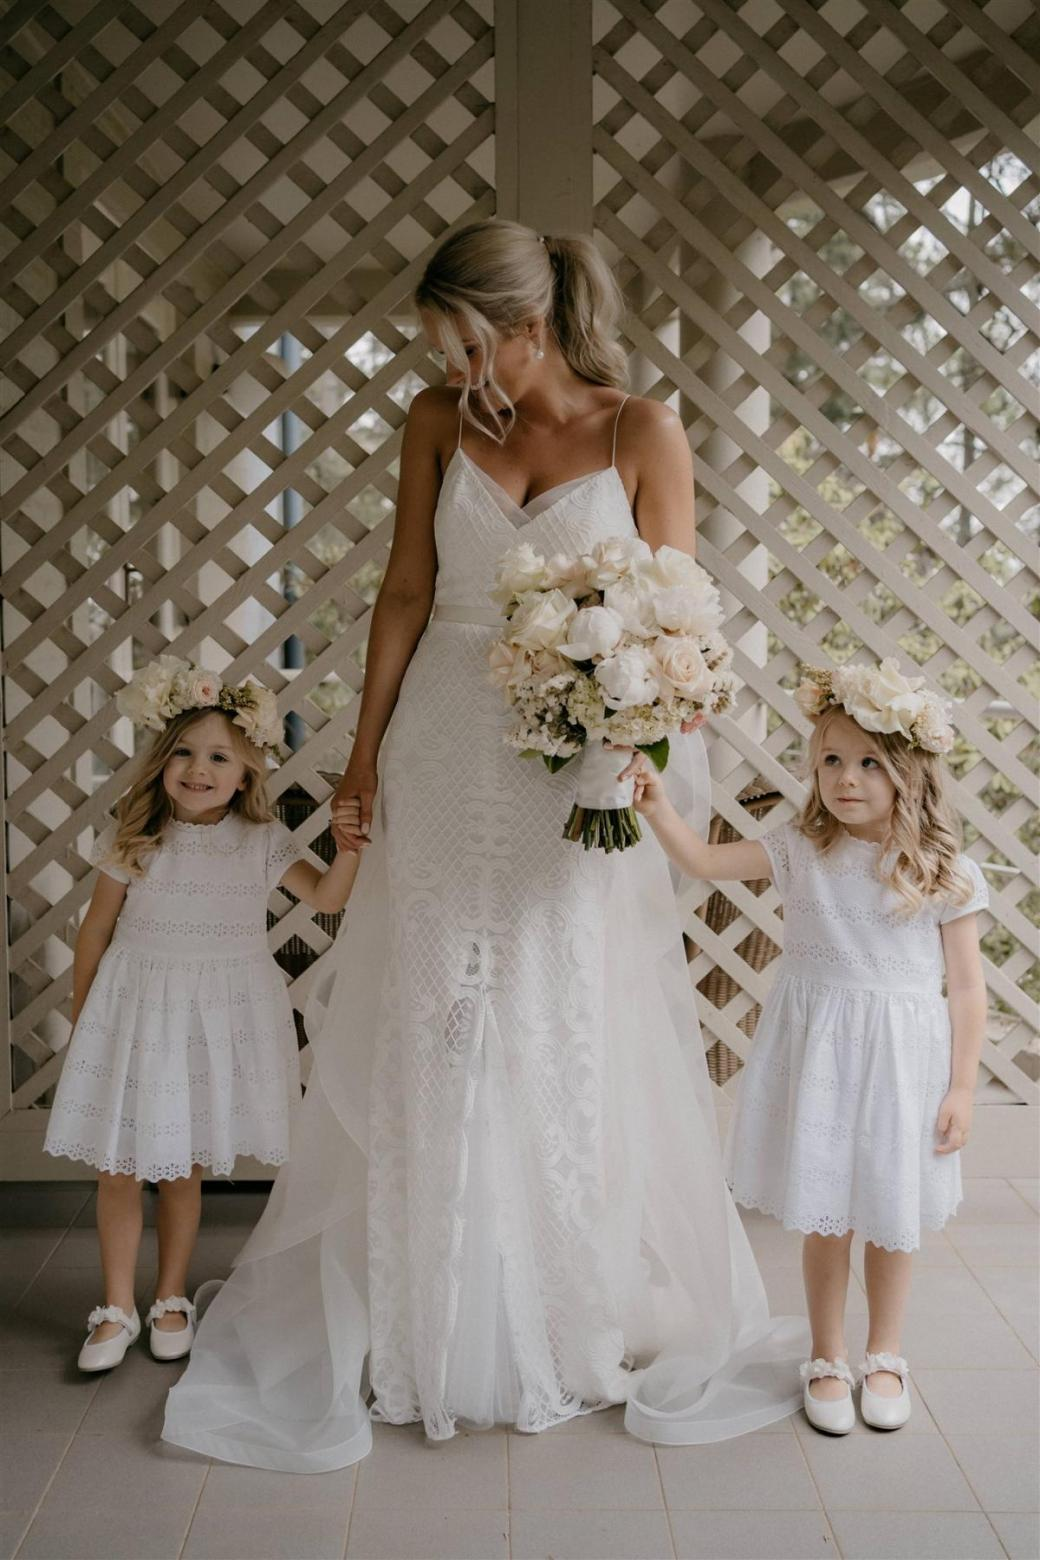 KWH bride Ashleigh with her two flower girls, holding her pink and white florals wearing the Elodie gown, a lattice lace wedding dress with spaghetti straps.